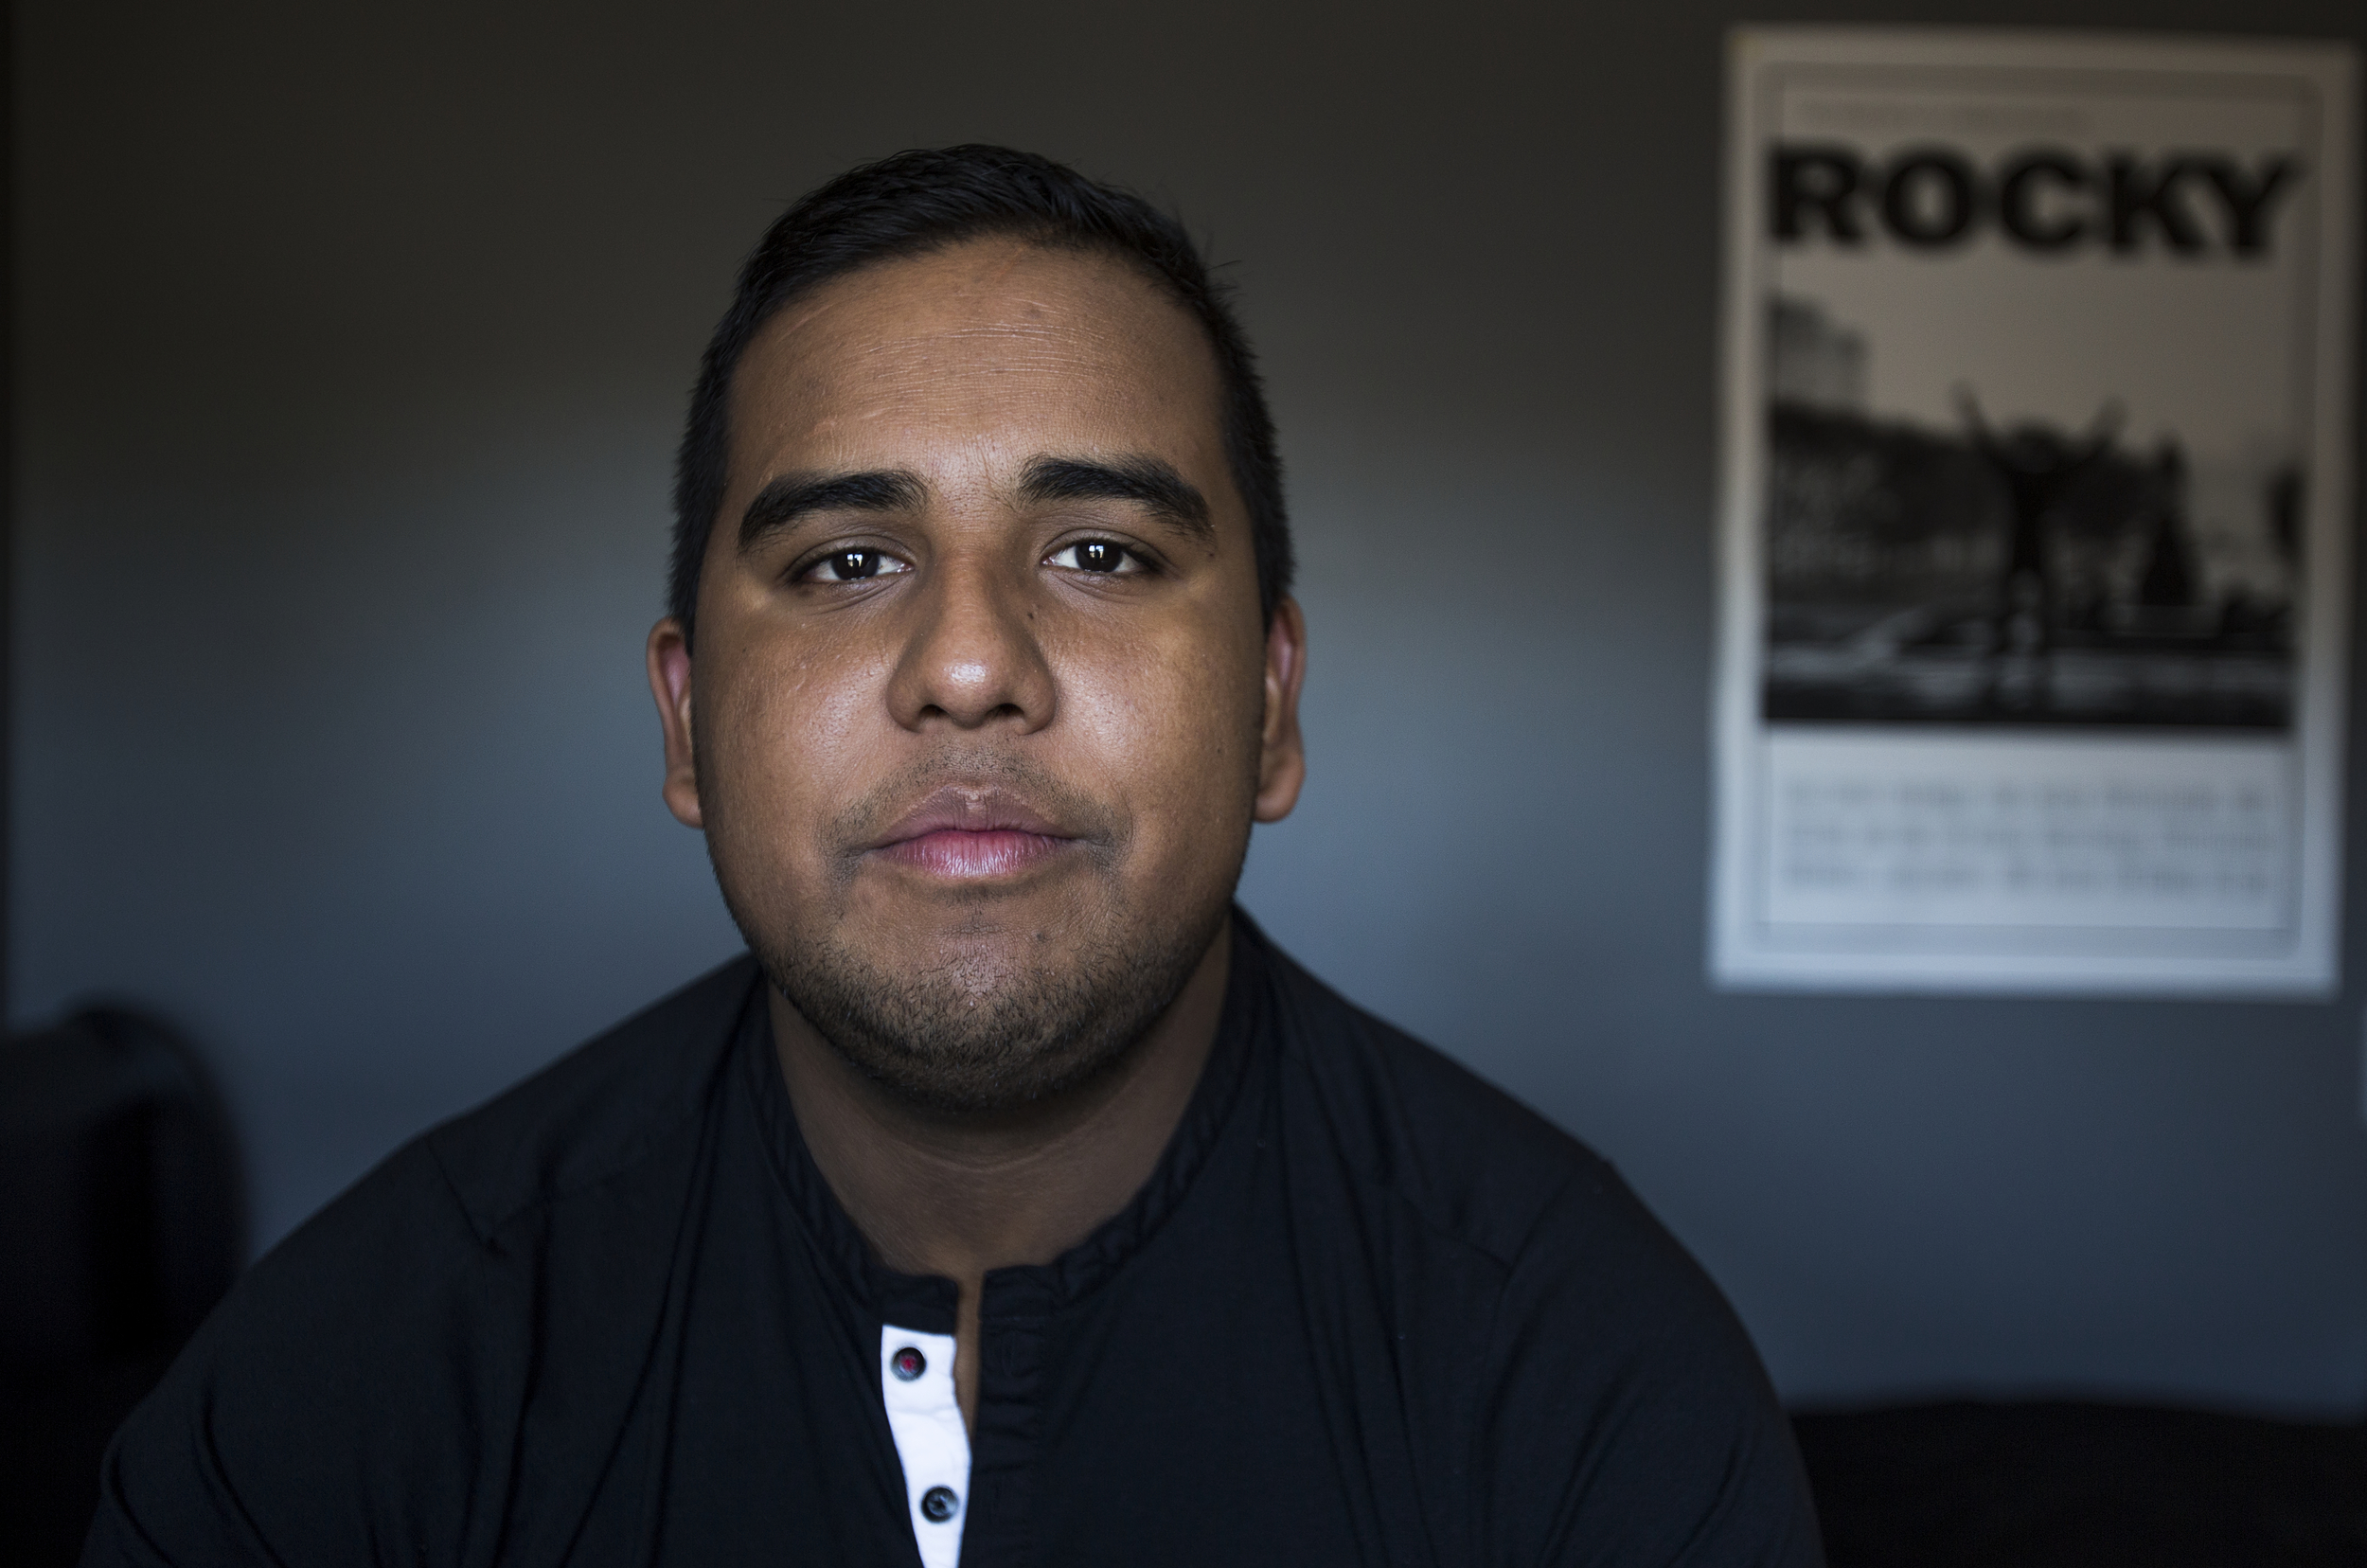 While sitting on the edge of his bed, Edwin Silva, 22, of Westland speaks about his situation as he battles to become an American citizen. Silva was detained by ICE on July 23, 2015 after receiving a DUI which prevented him from renewing his visa.